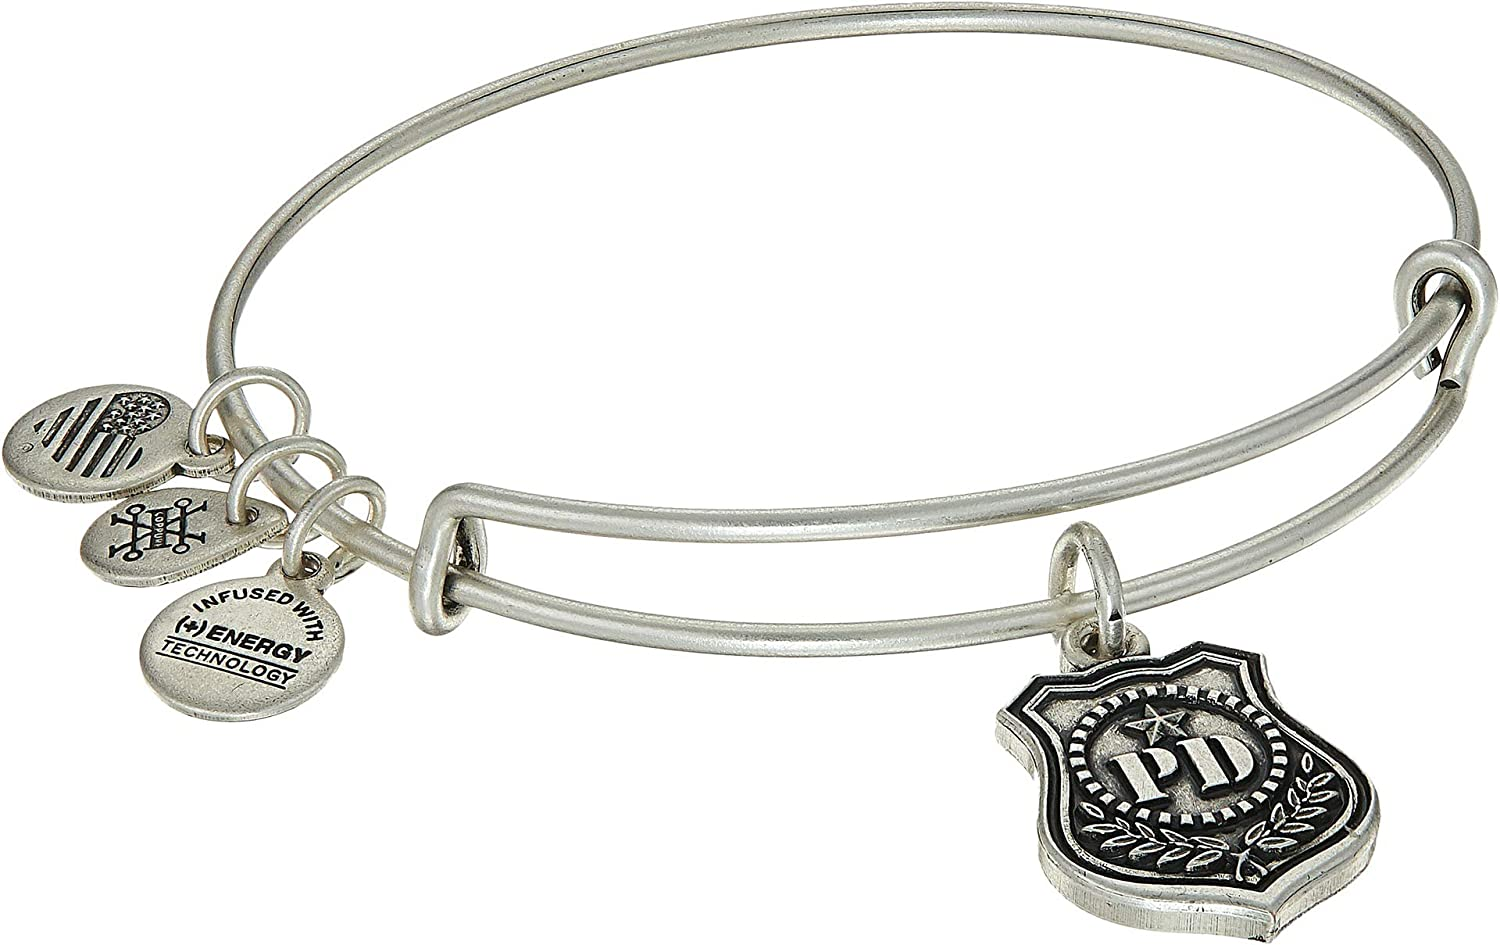 Alex and Ani Law Enforcement Bangle